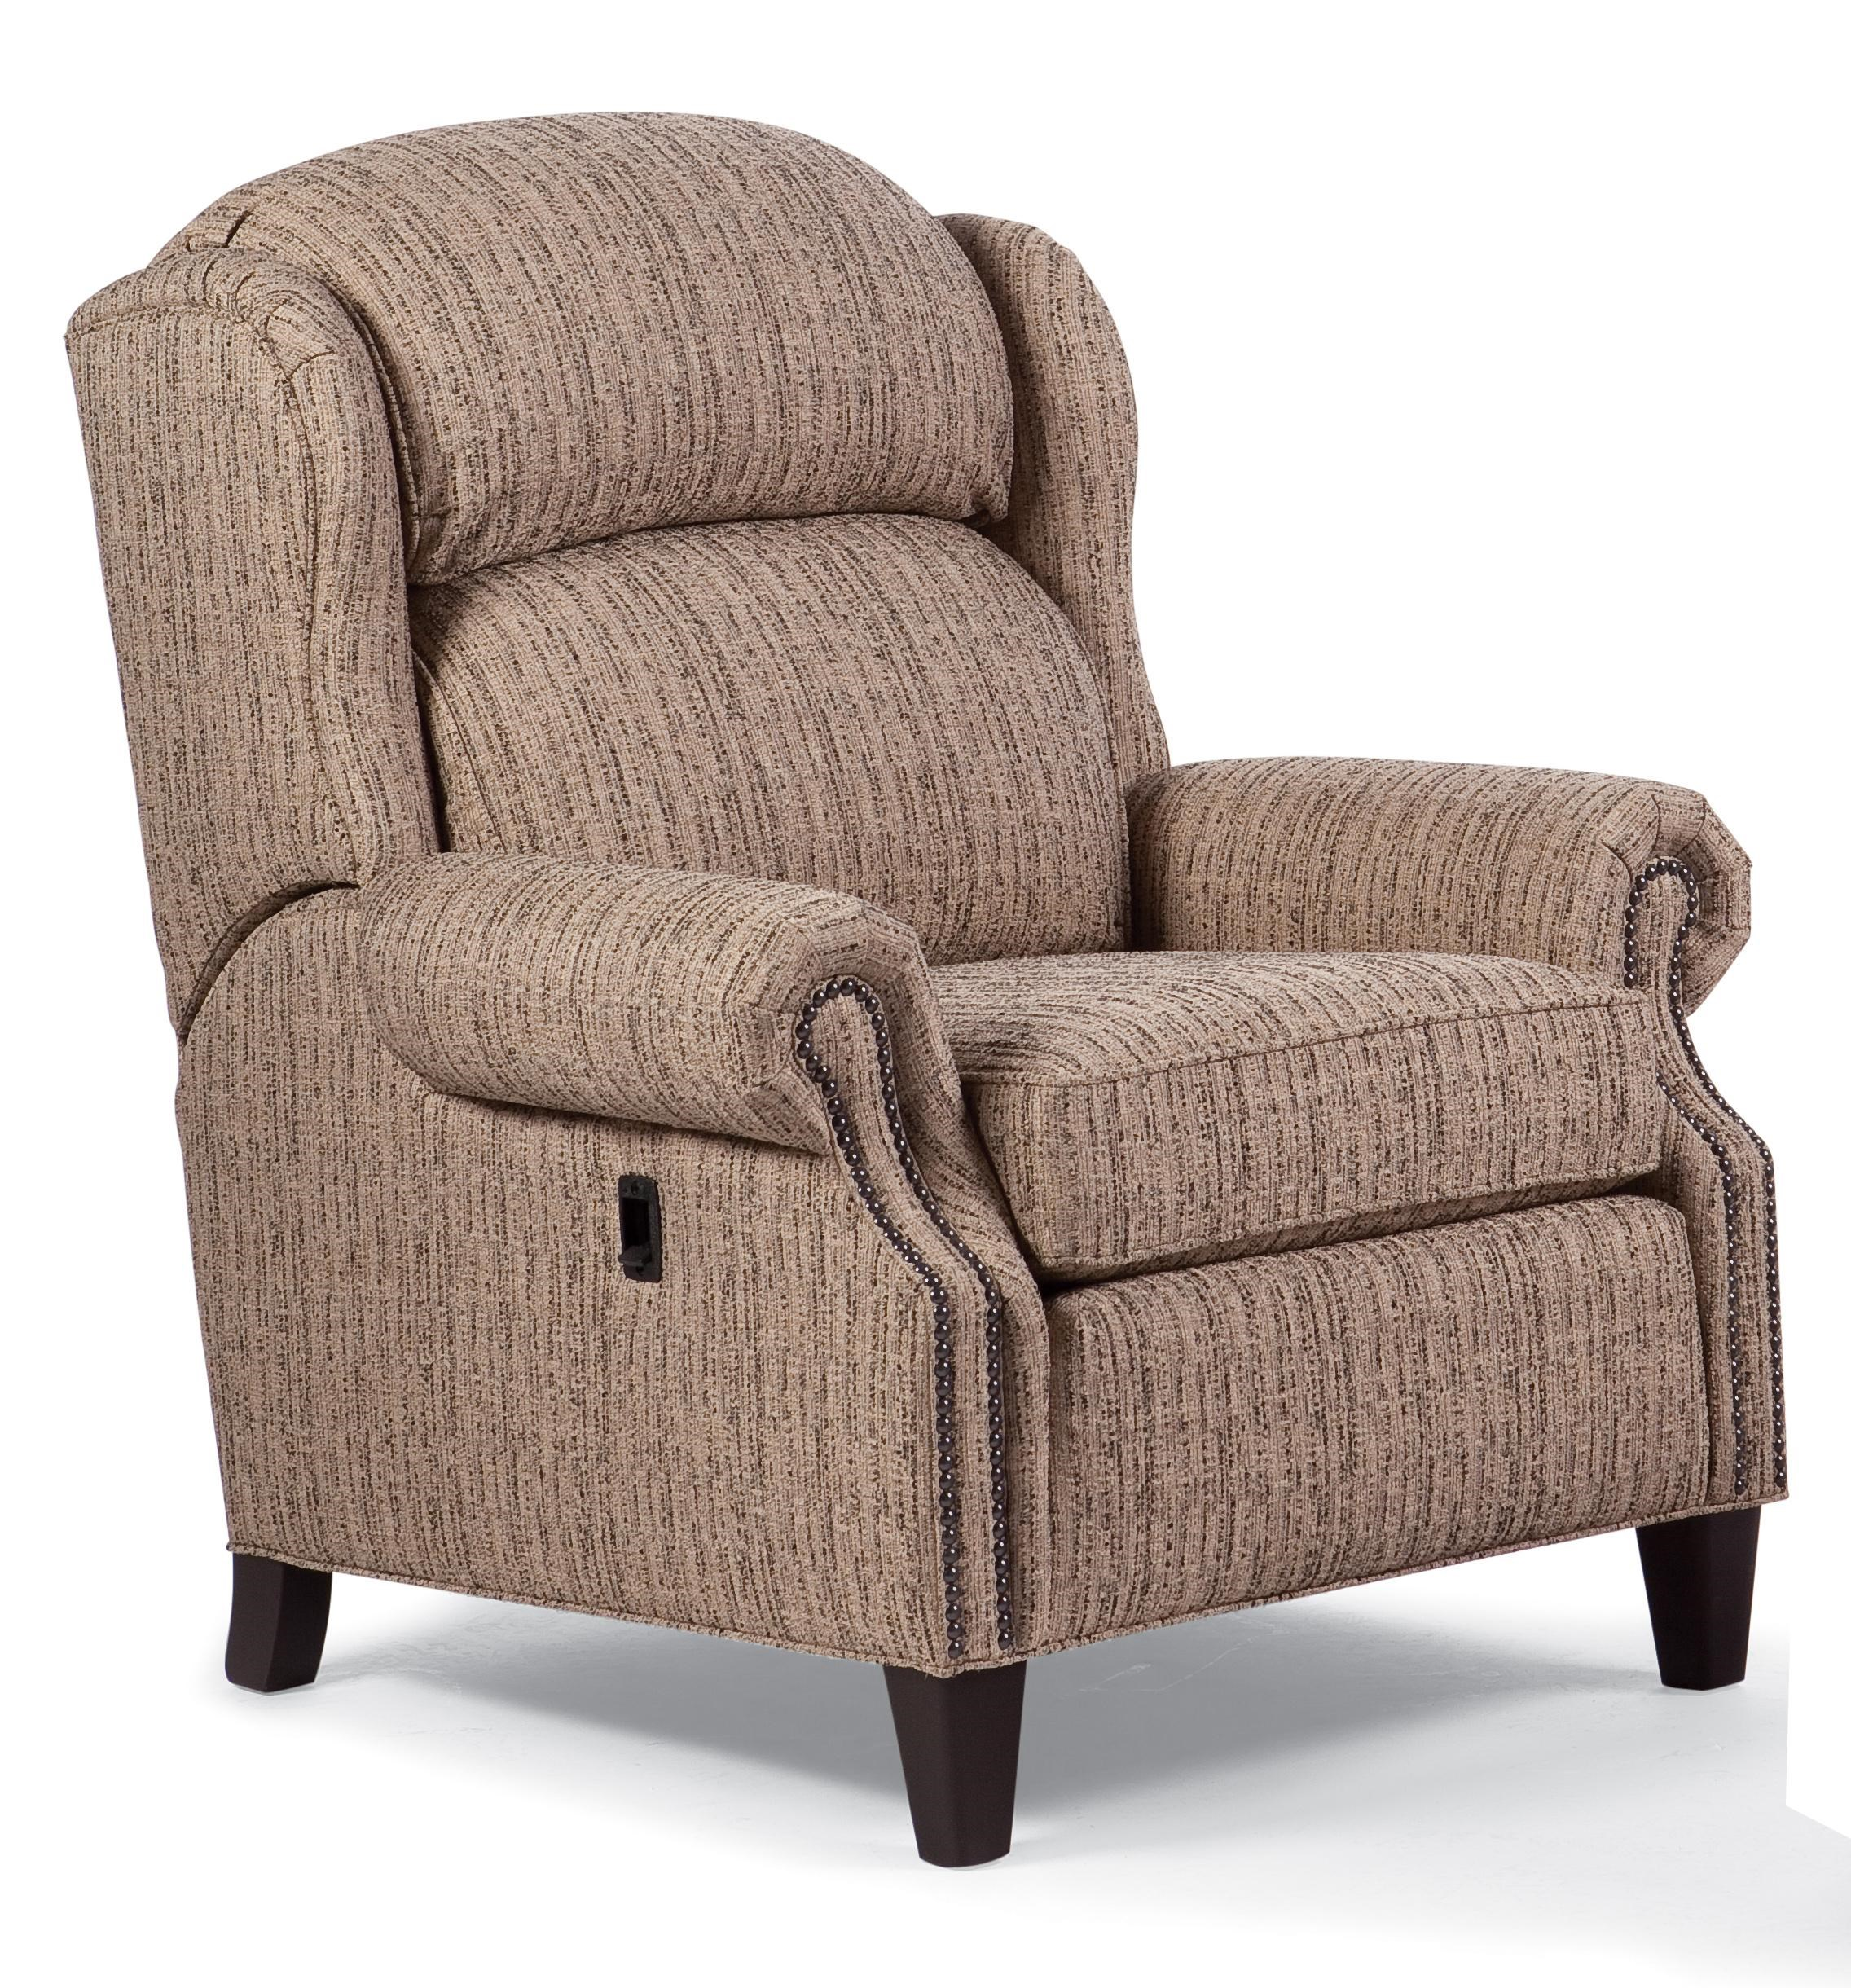 Chair Shown May Not Represent Exact Features Indicated  sc 1 st  Dunk u0026 Bright Furniture & Smith Brothers Recliners Traditional Motorized Reclining Chair ... islam-shia.org